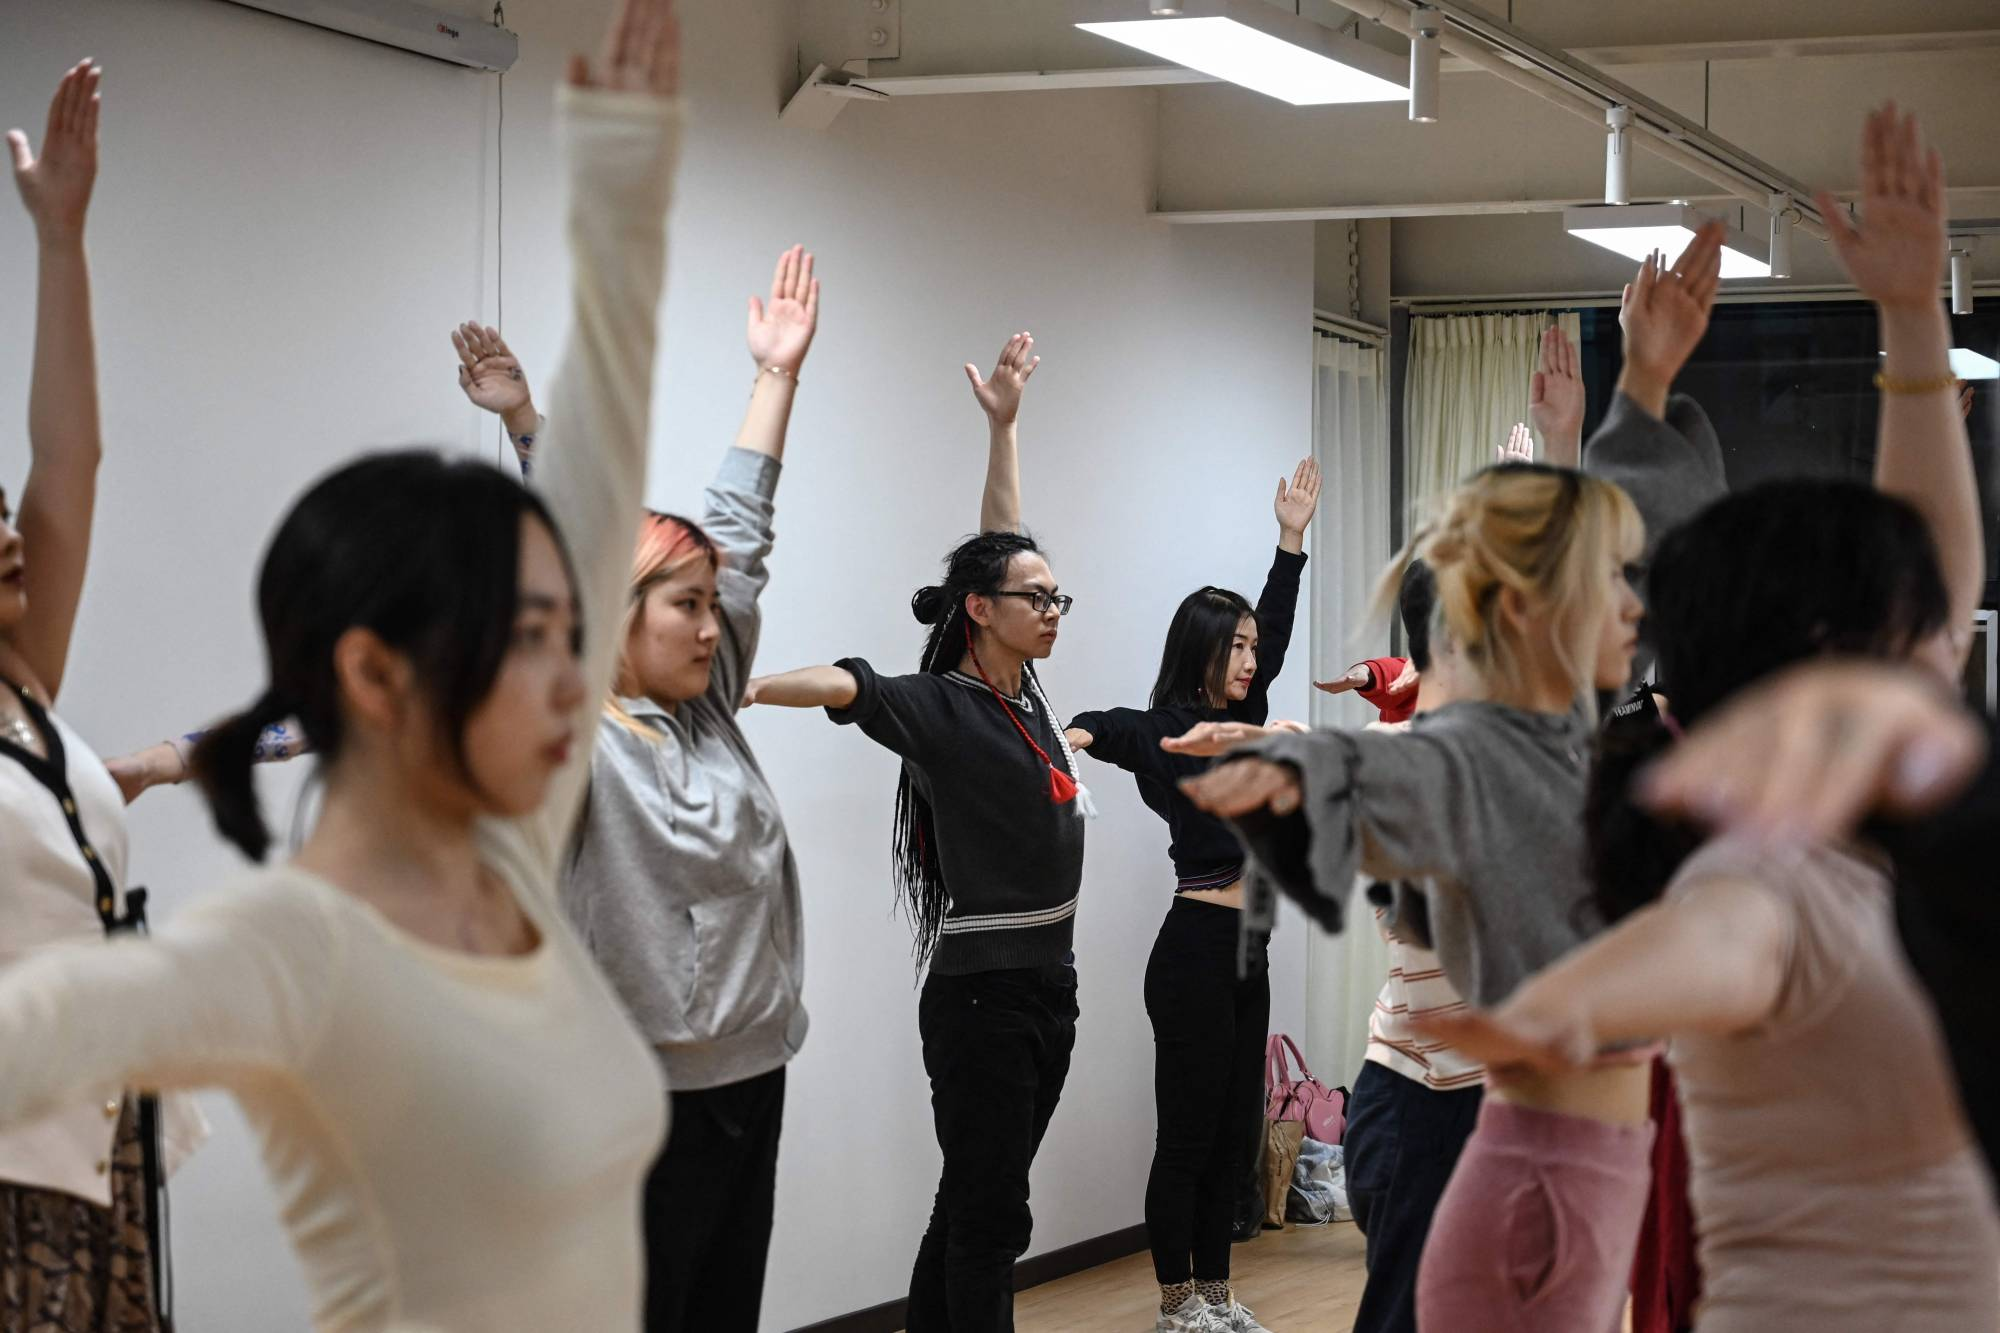 Huahua (center) attending a voguing dance course in preparation for a voguing ball in Beijing. | AFP-JIJI